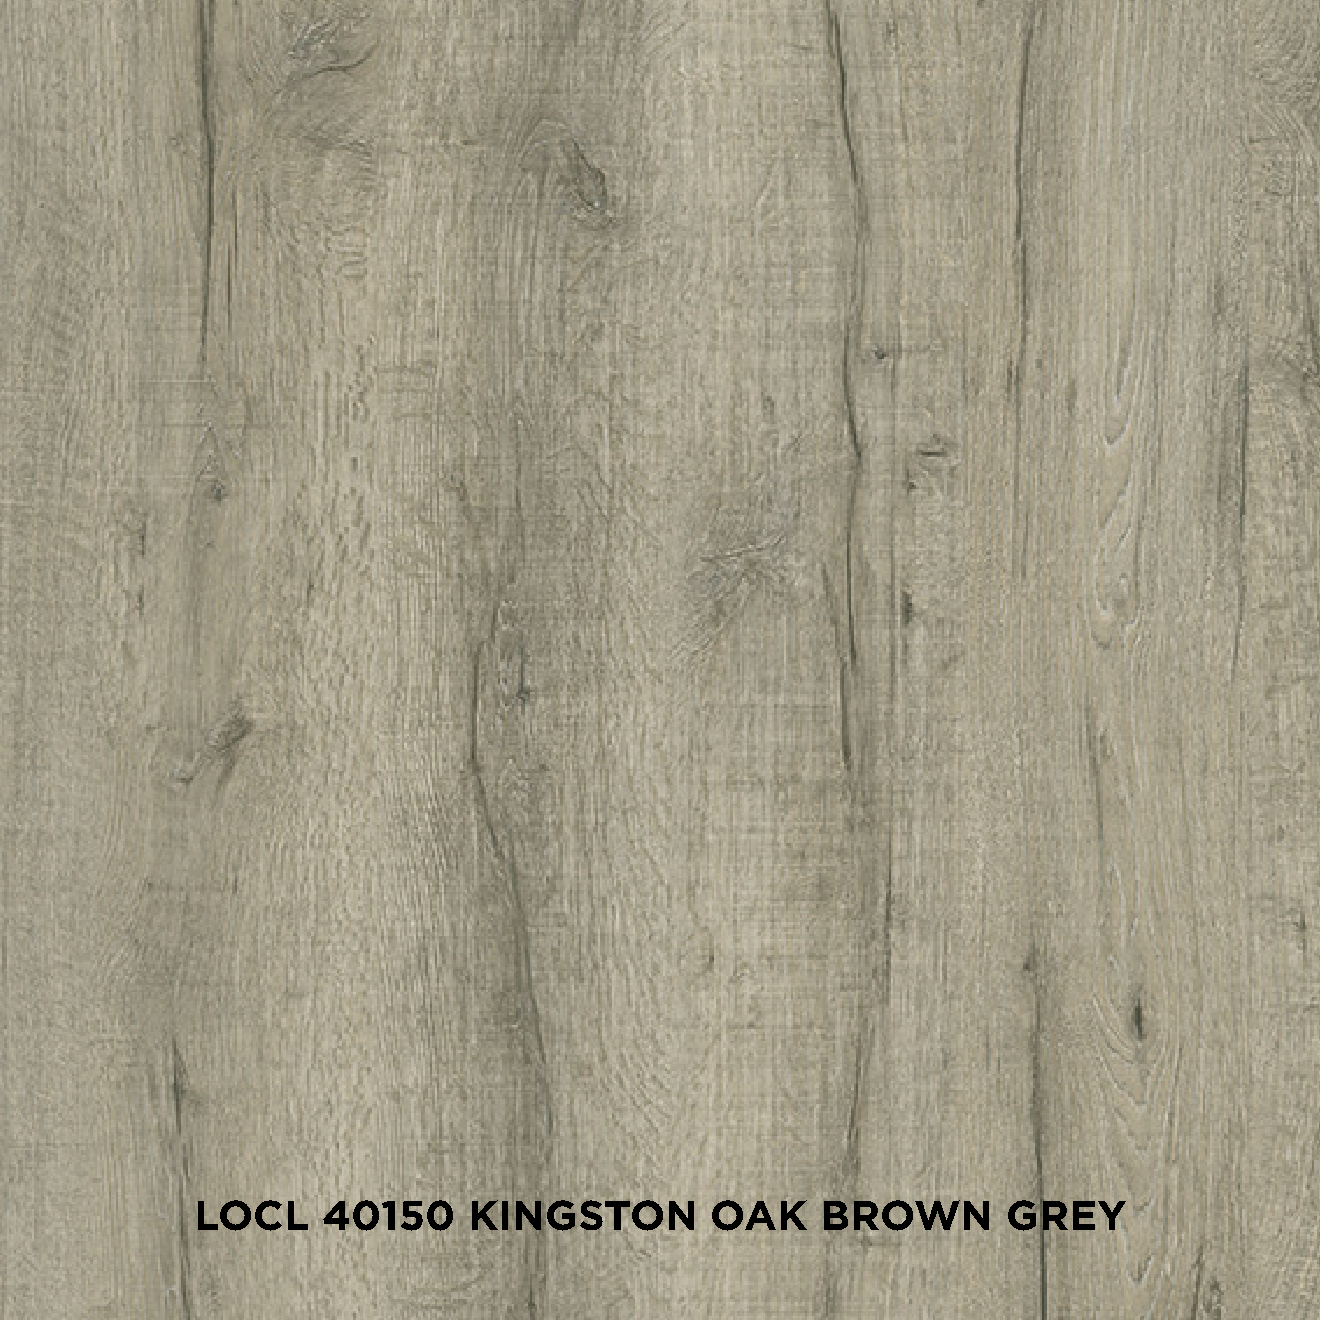 LOCL 40150 KINGSTON OAK BROWN GREY